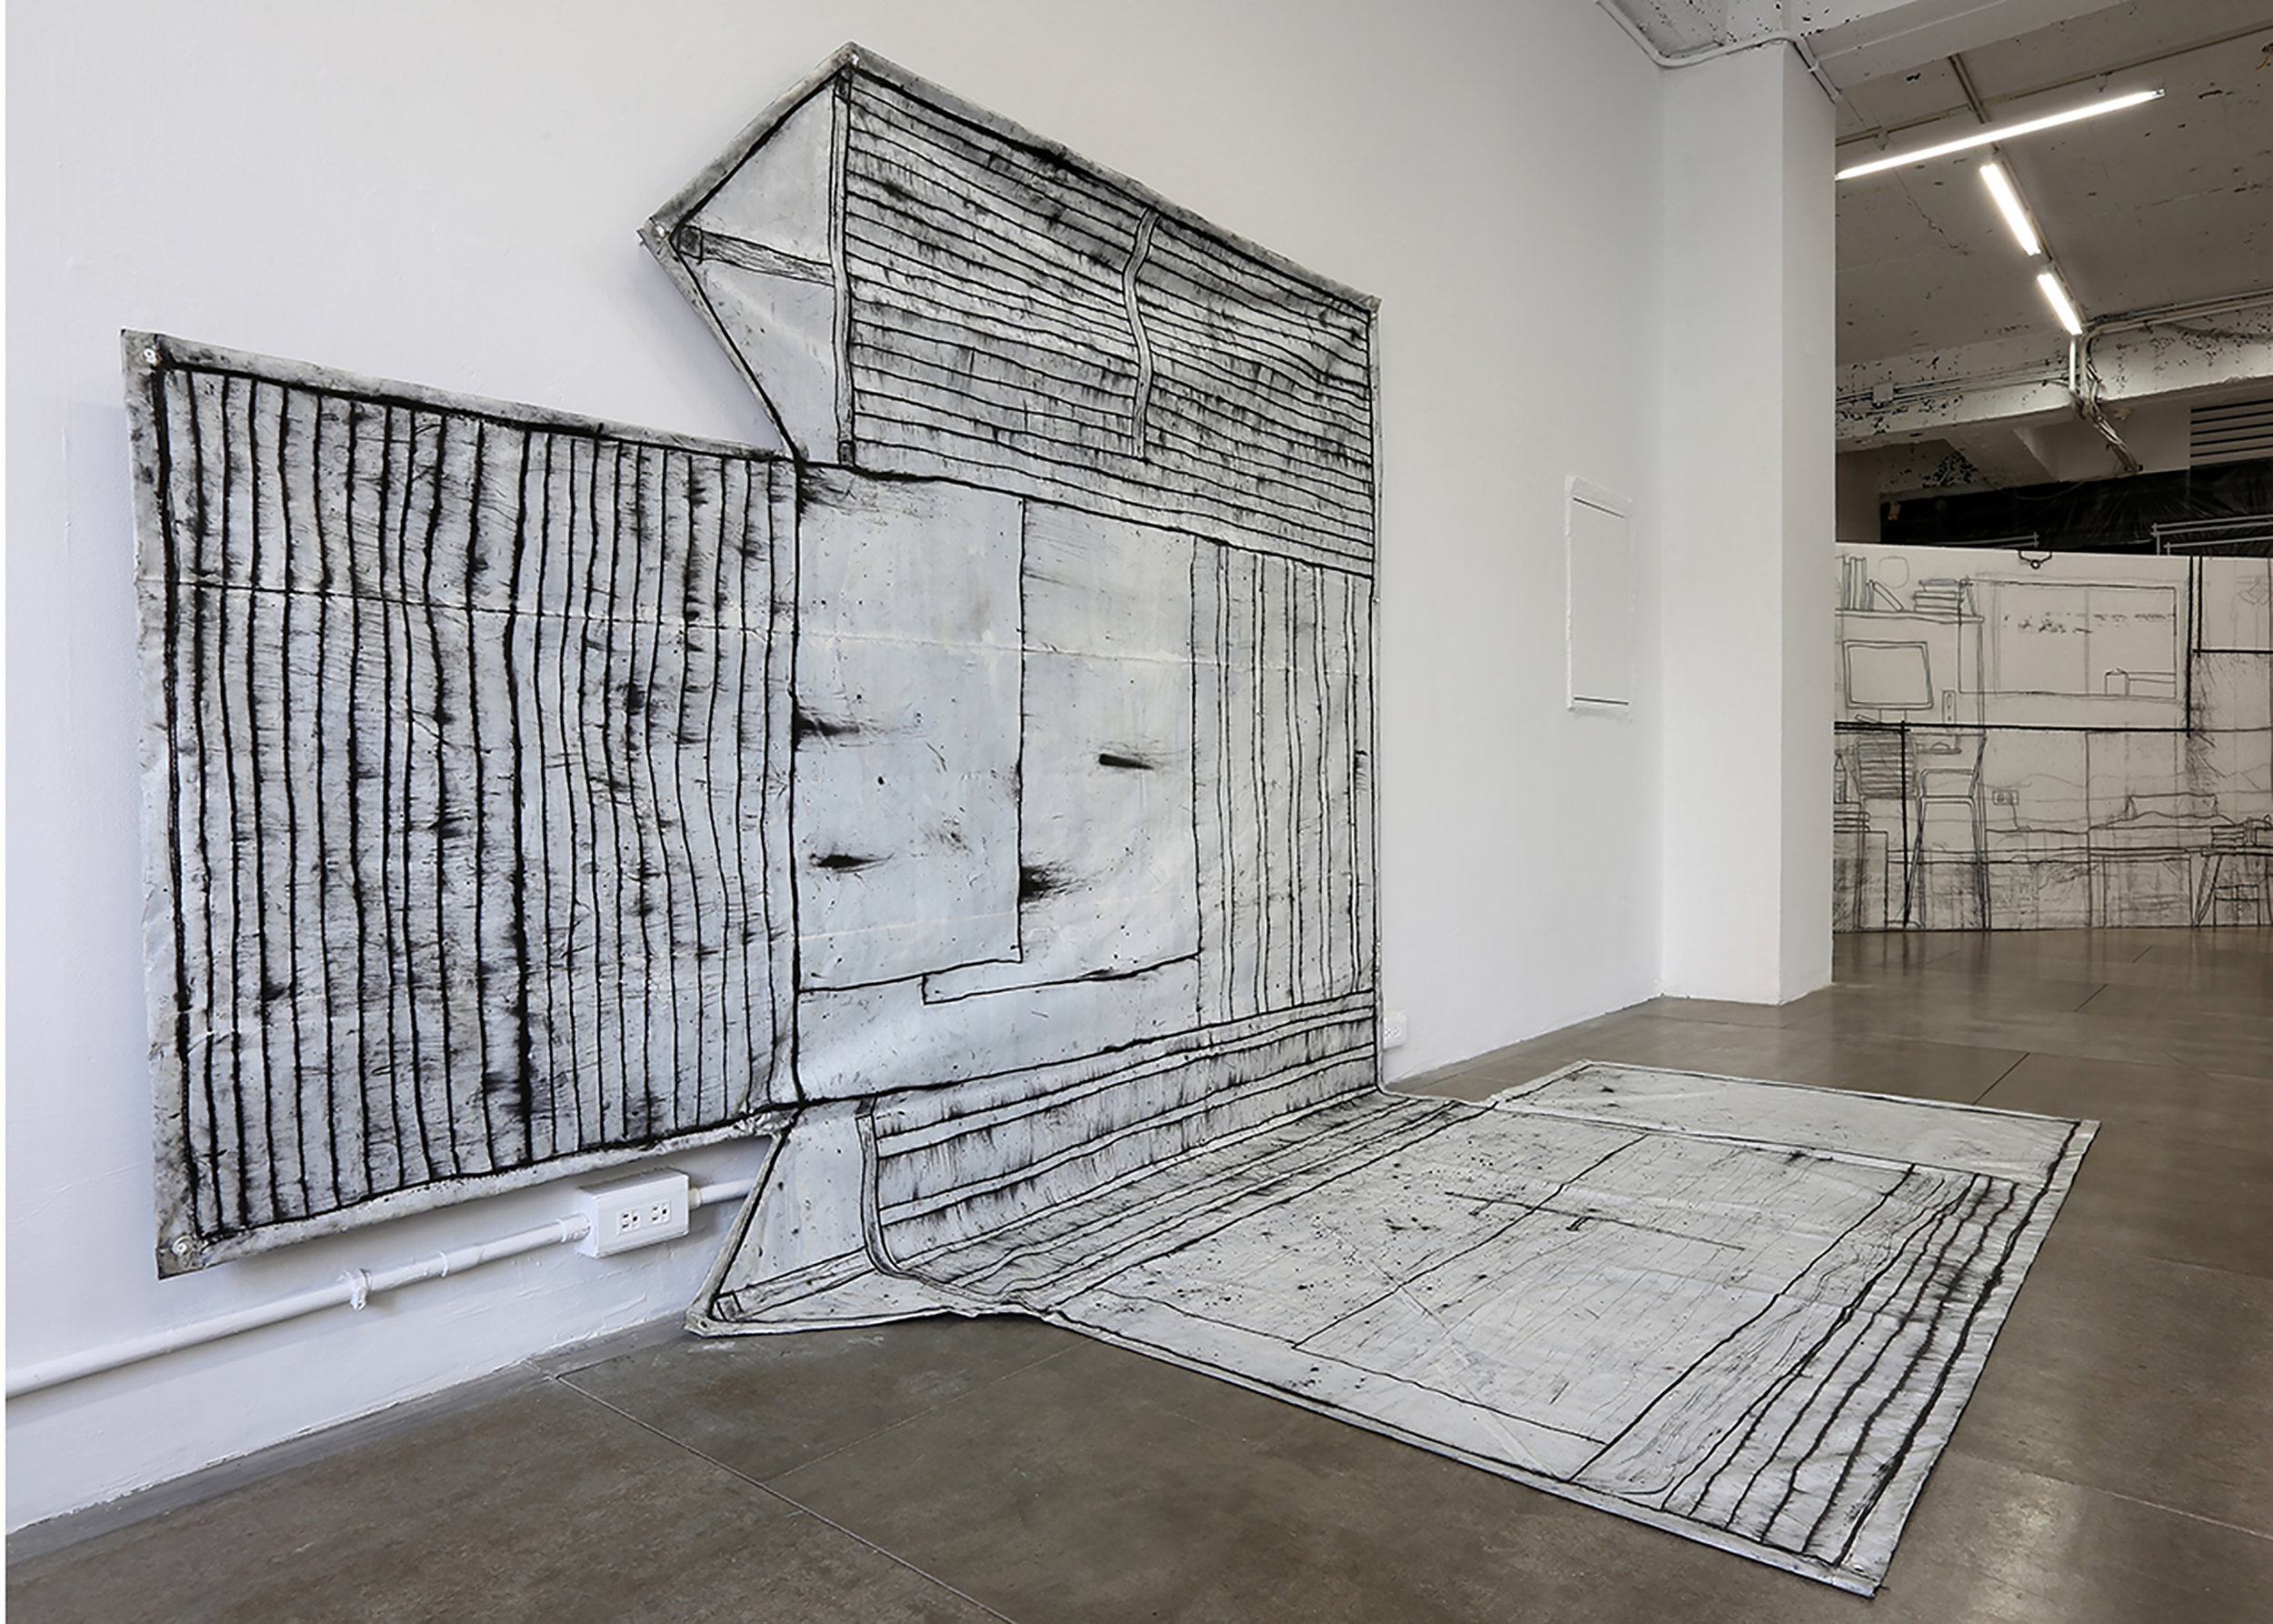 Chiao-Yen Hsu,  Tomography, The Space of Plus # 2,  2012, charcoal, acrylic, plastic, 280 x 300 cm